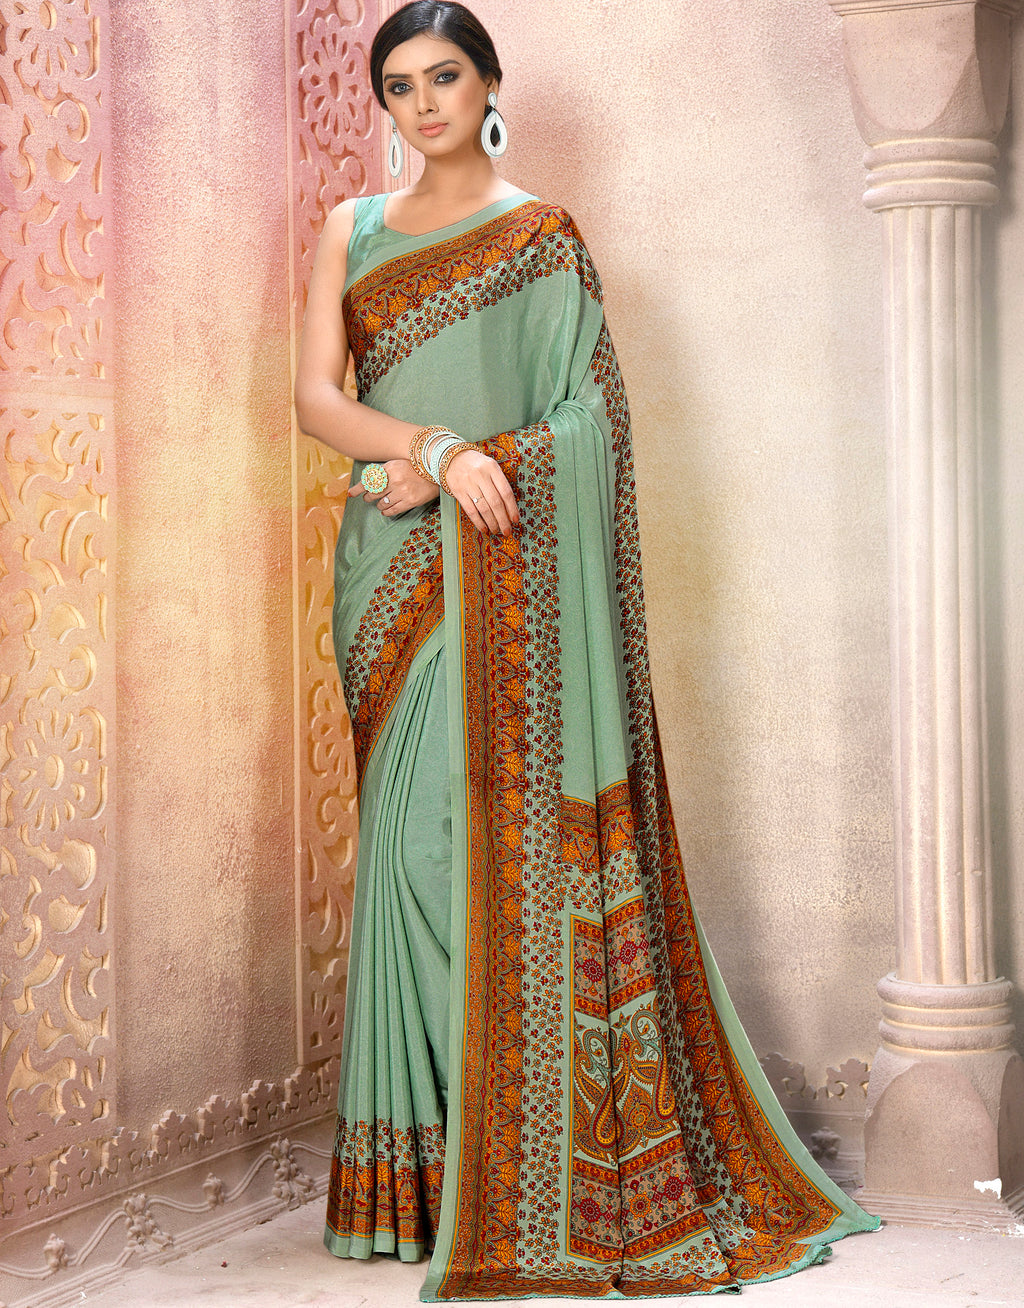 Aqua Blue Color Crepe Soft & Light Weight Printed Sarees NYF-7261